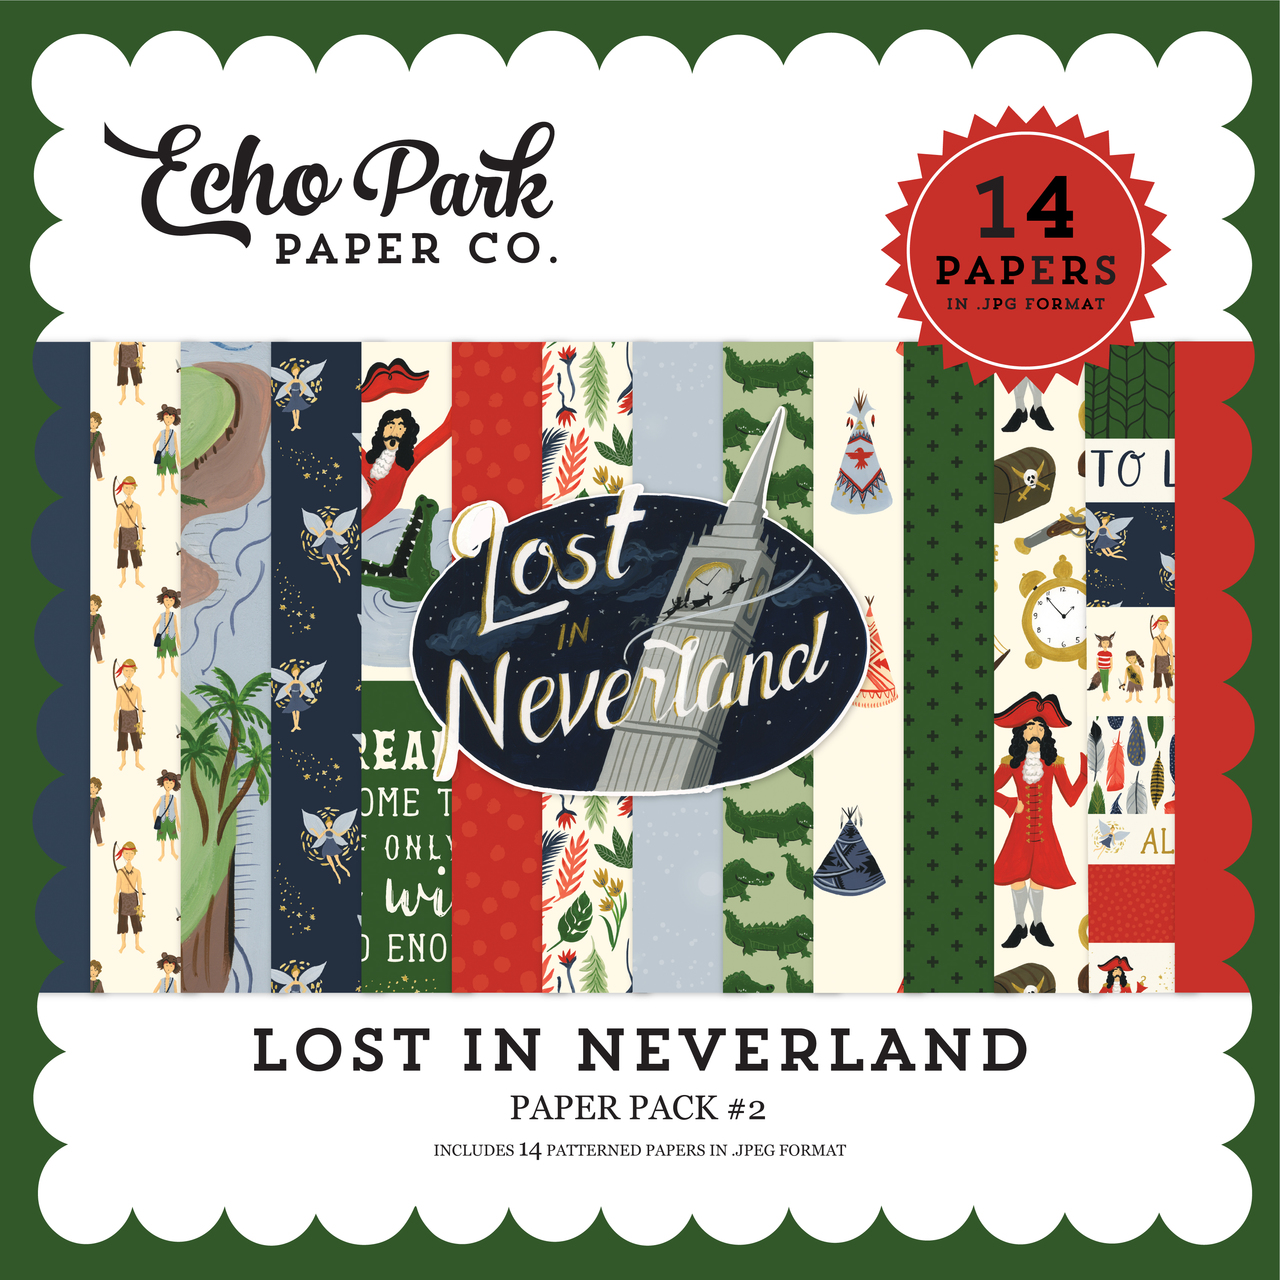 Lost In Neverland Paper Pack #2